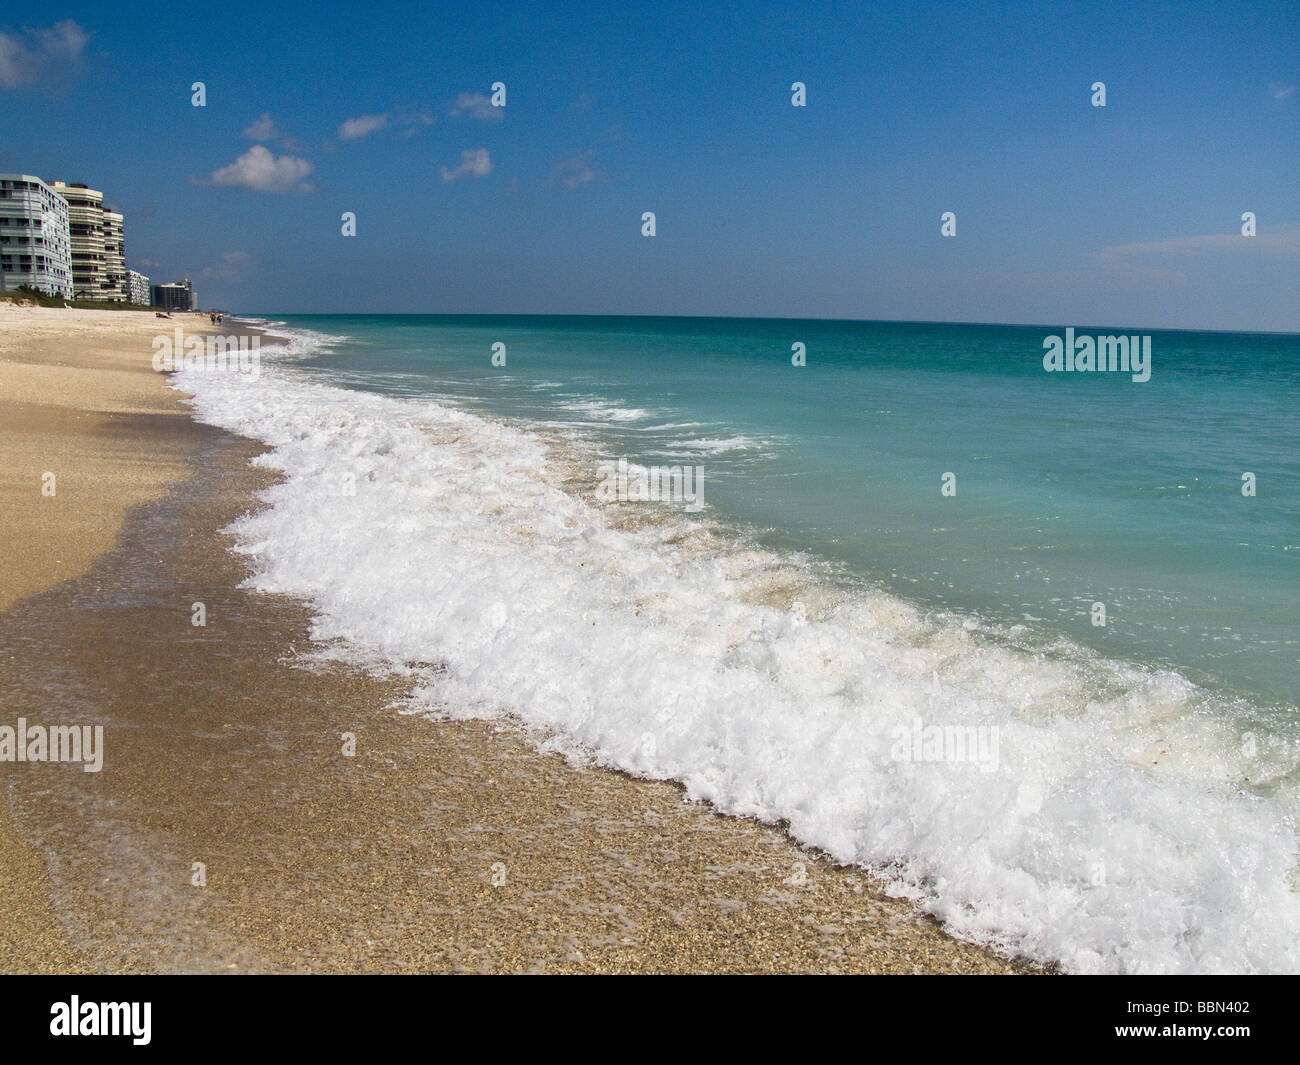 small waves wash up on shore at beach - Stock Image